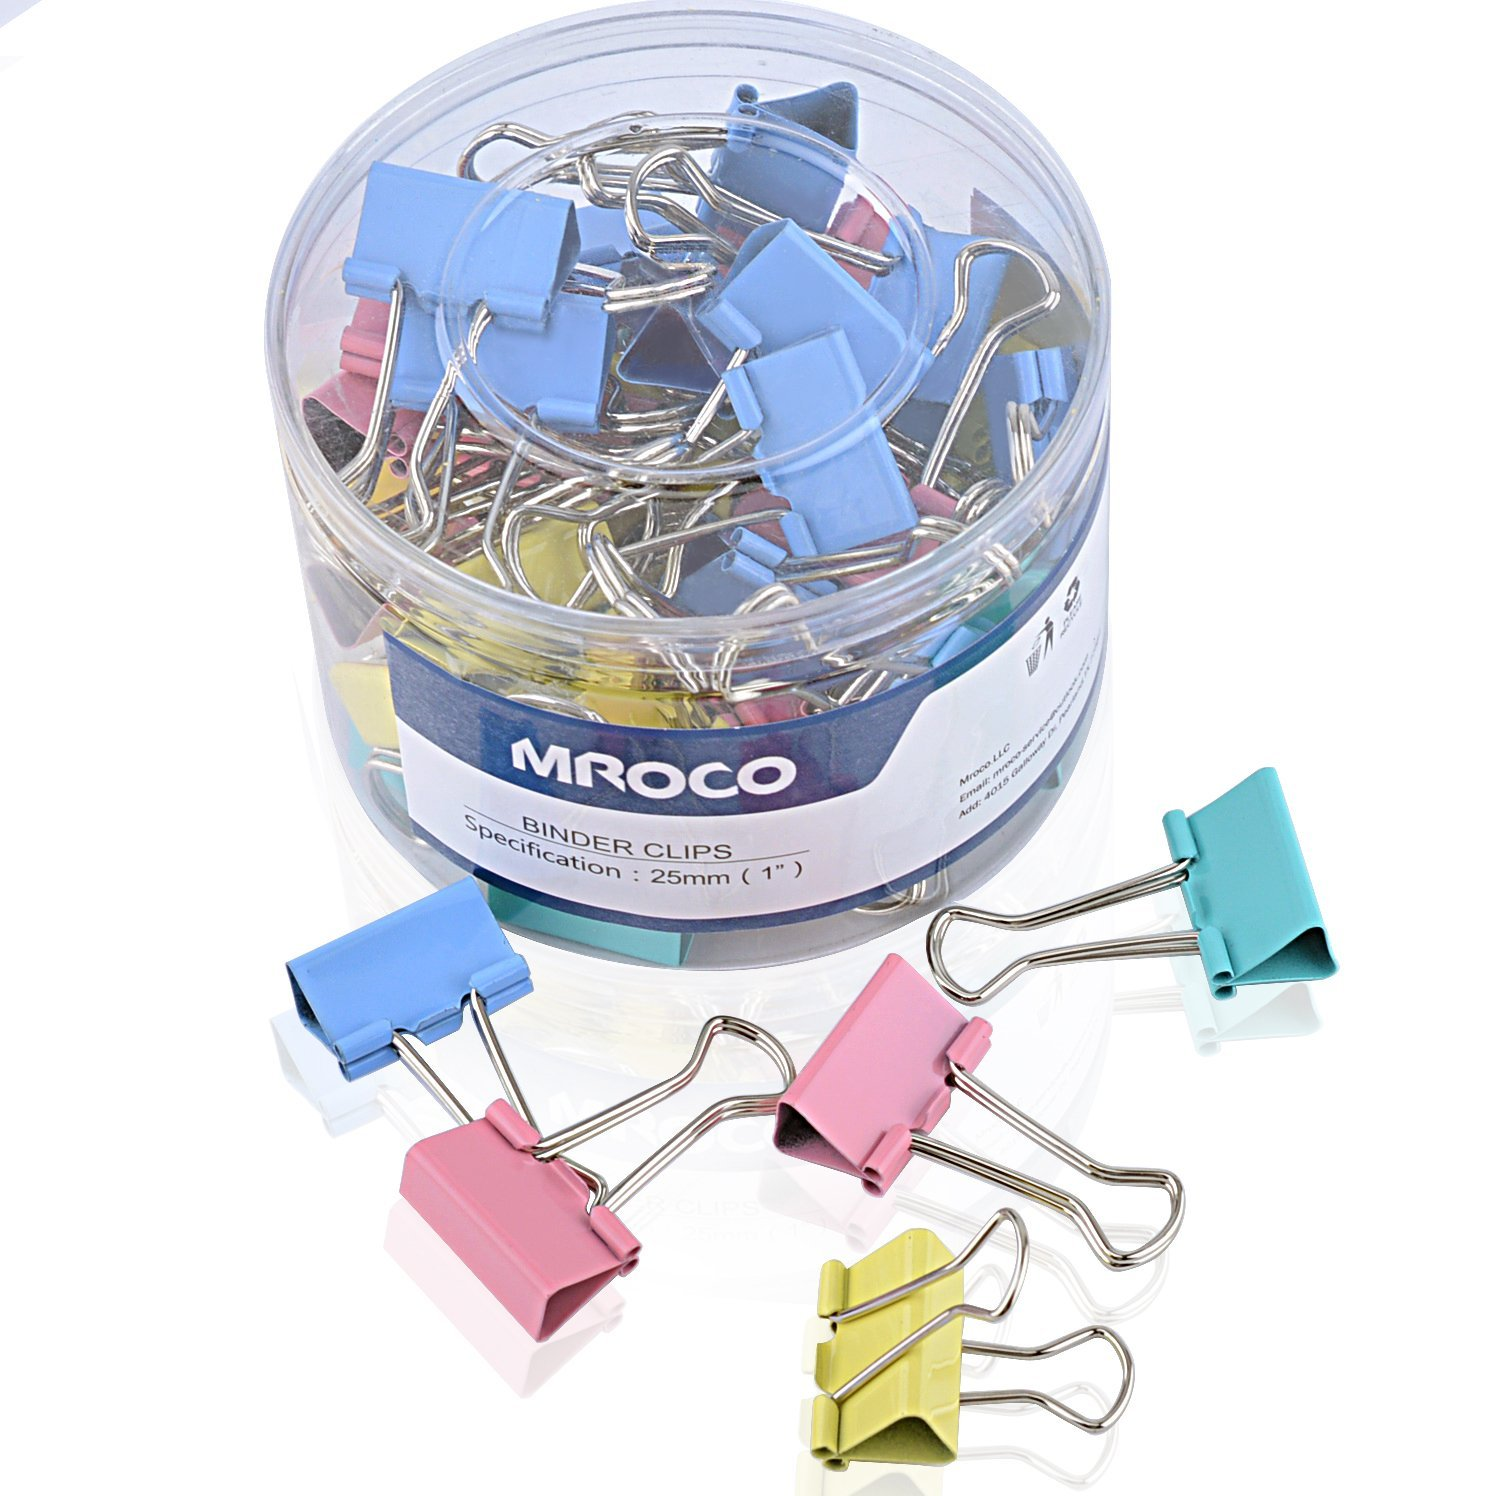 MROCO 48 PCS Binder Clips Assorted Colors, Small 1 Inch Width, 1/2 Inch Paper Holding Capacity, Paper Clamps Binder Clamps for Office, Home, Schools, Kitchen Home Usage (Colored)